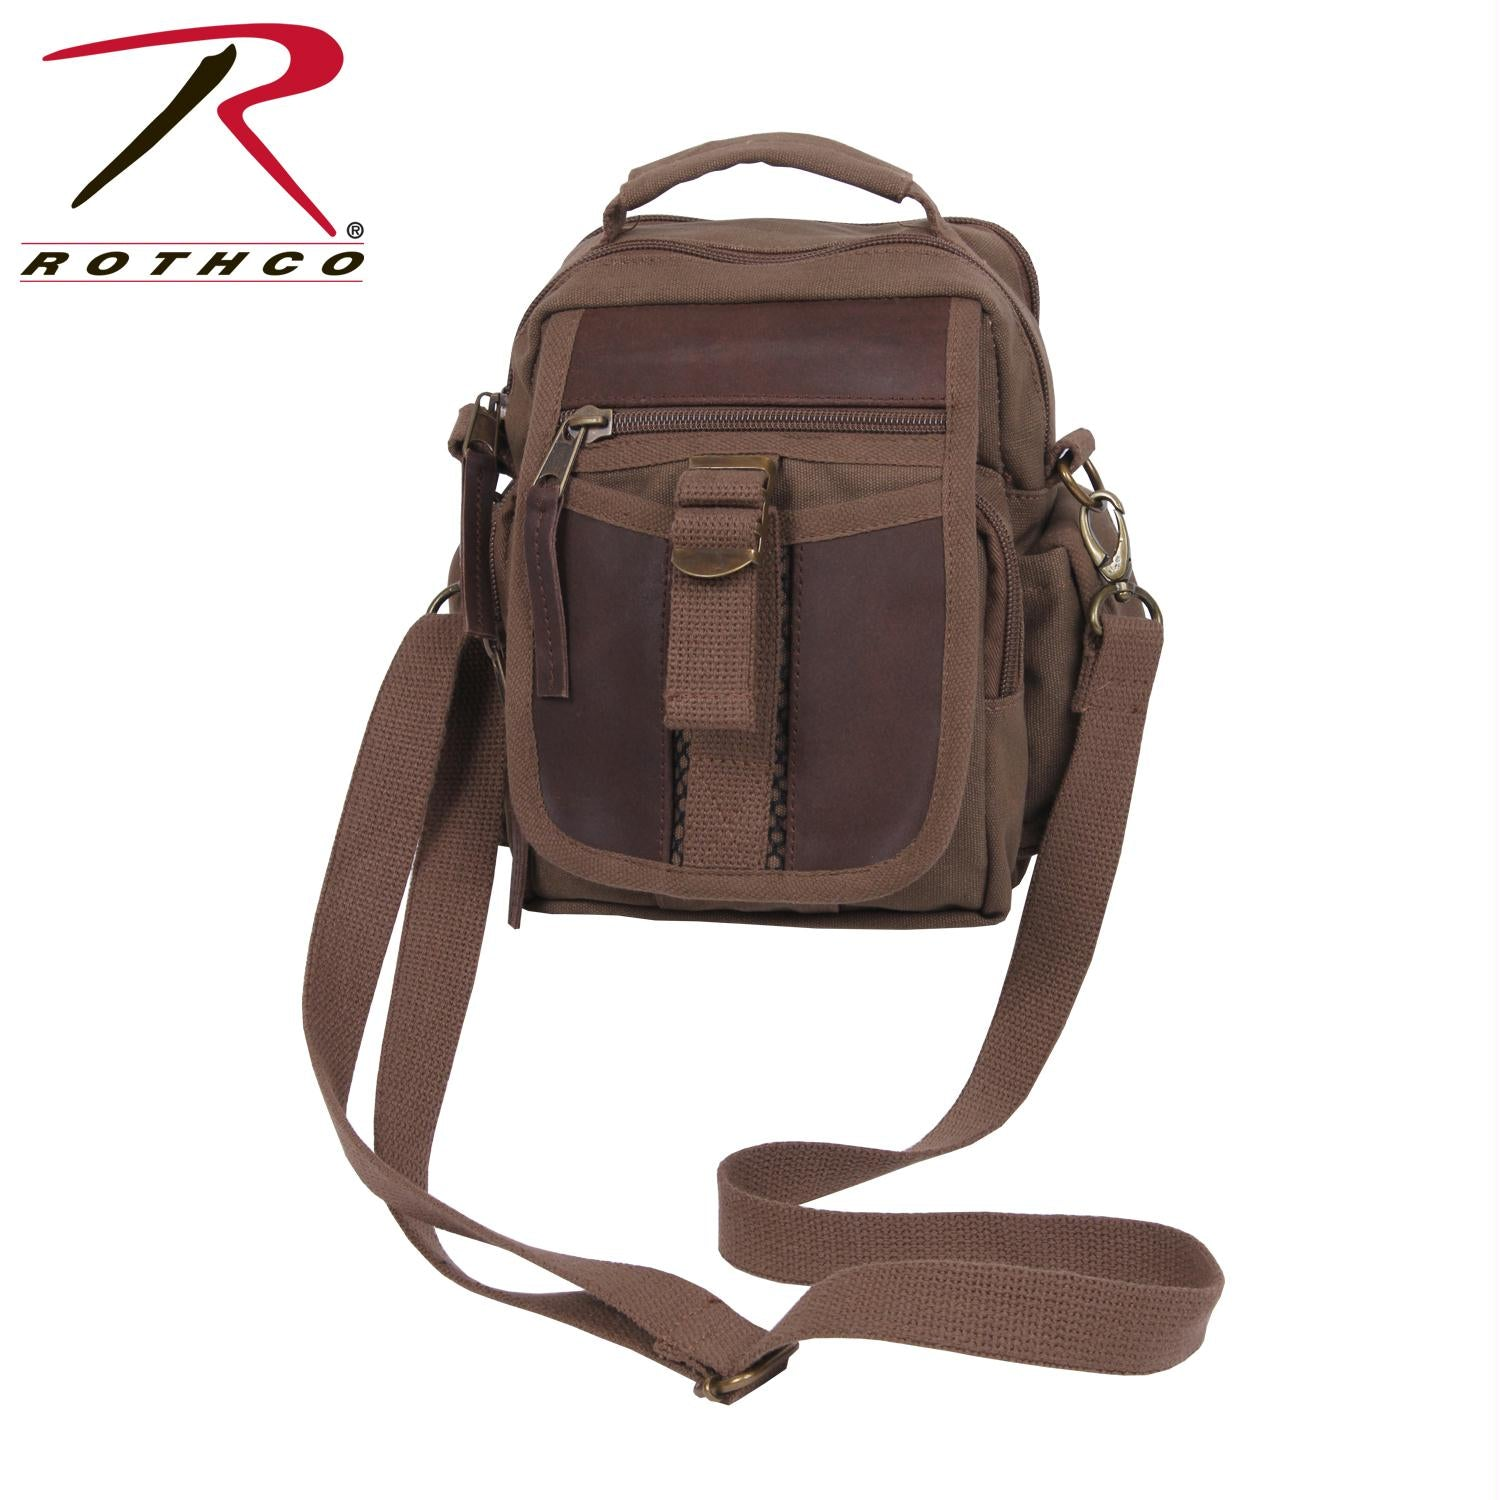 Rothco Canvas & Leather Travel Shoulder Bag - Brown